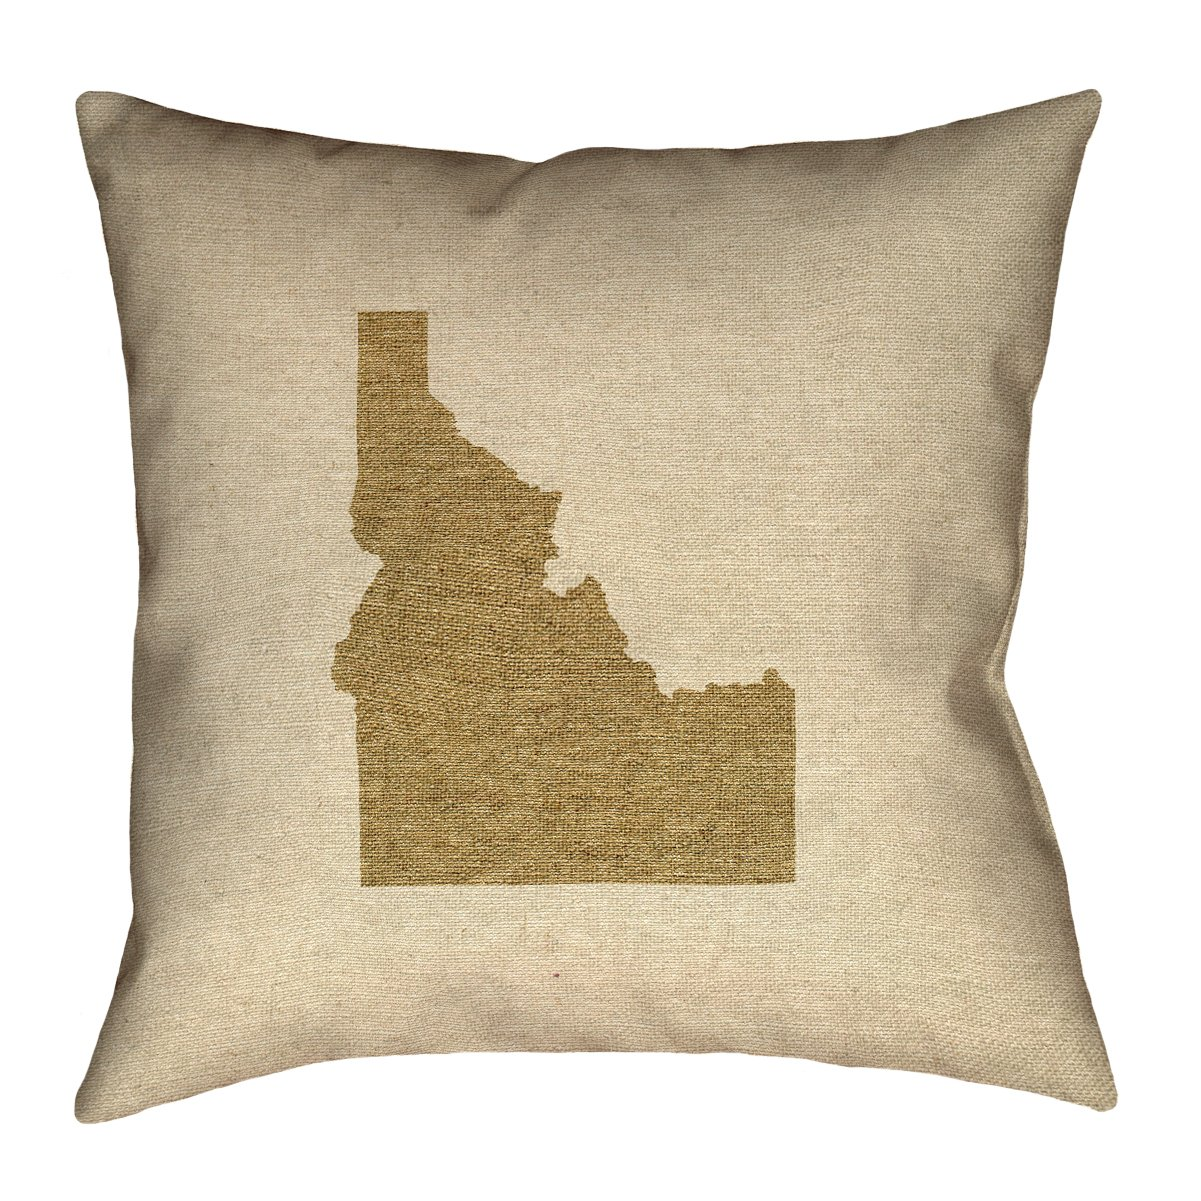 Waterproof and Mildew Proof Idaho Canvas Pillow ArtVerse Katelyn Smith 16 x 16 Outdoor Pillows /& Cushions UV Properties